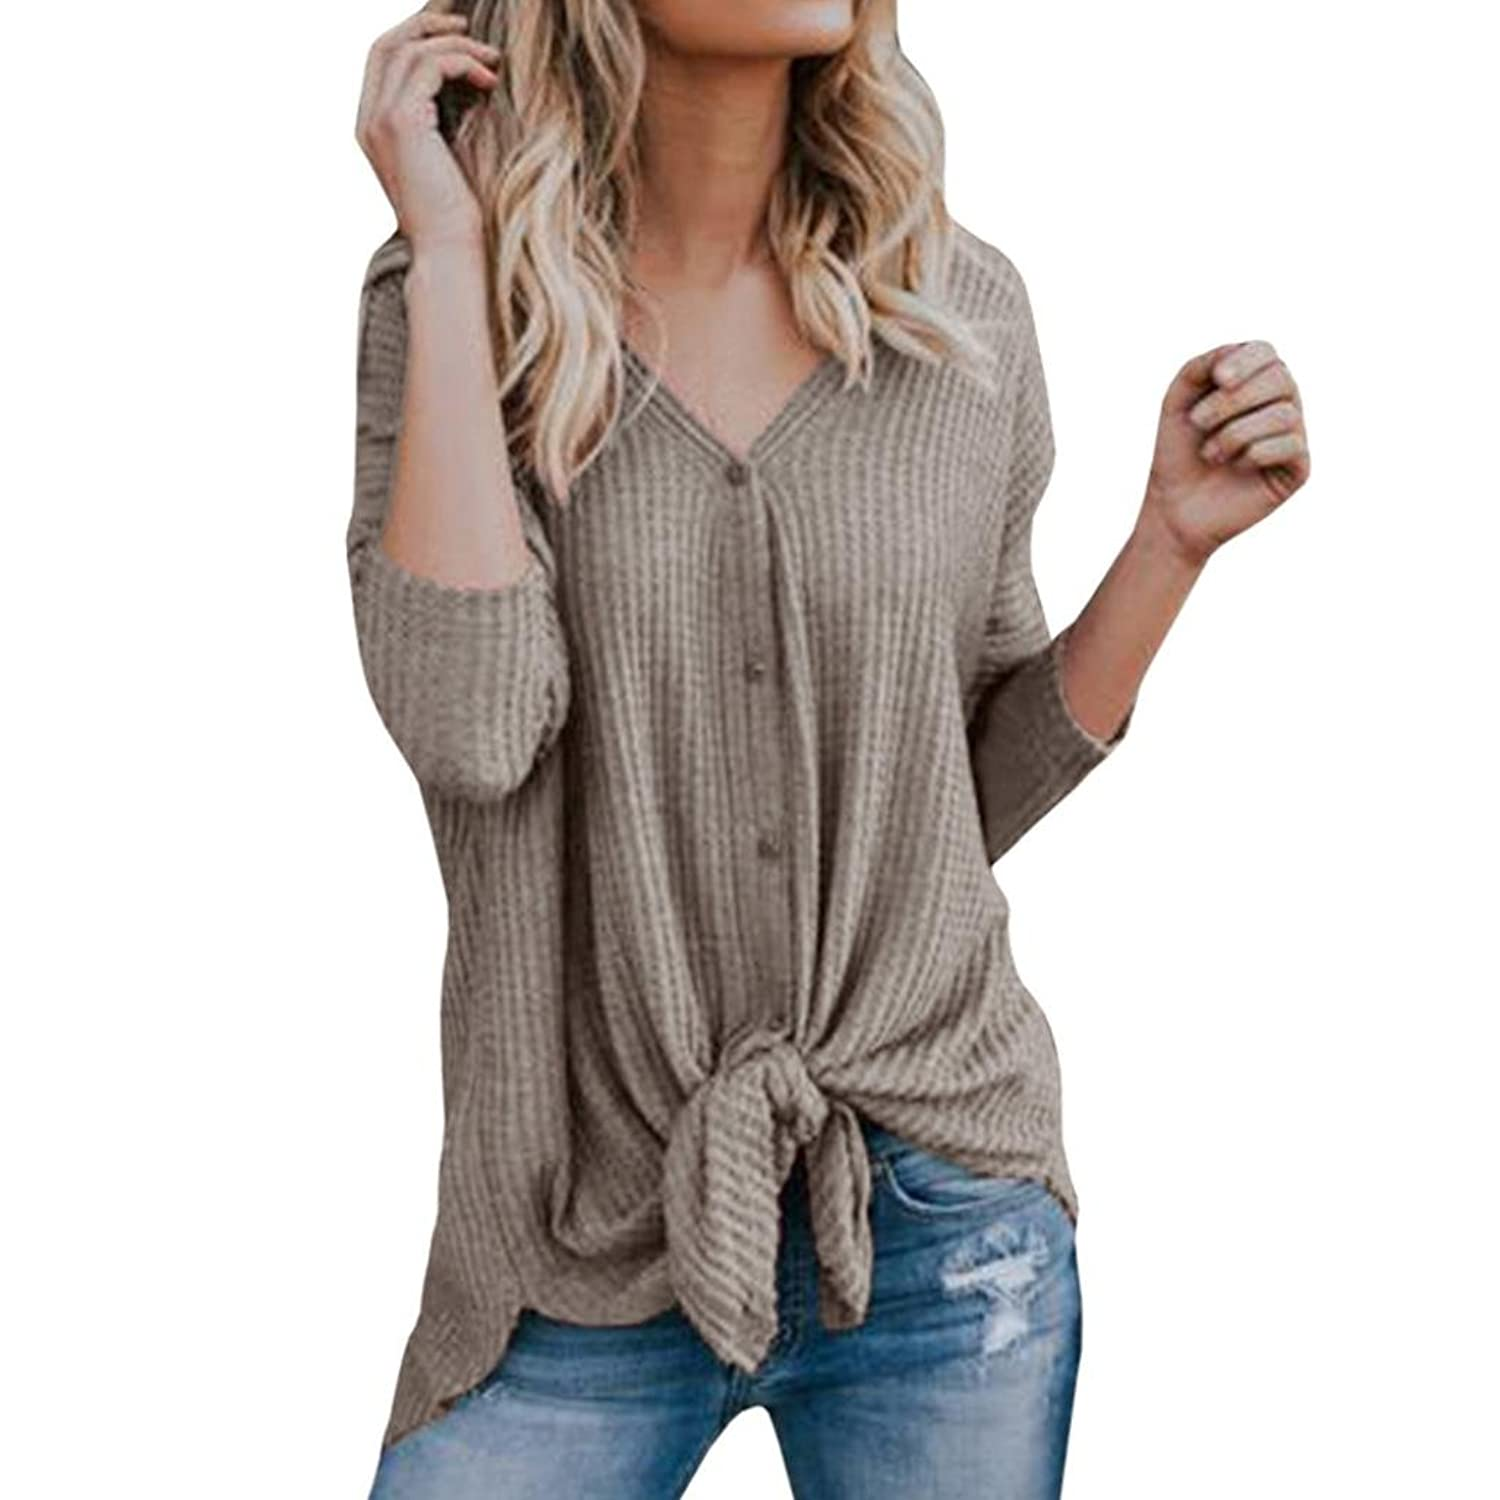 13e0d1d922da5 ❊Material Polyester♥♥Long sleeve round neck triple color block stripe  t-shirt casual blouse women s casual oversized baggy off-shoulder shirts  batwing ...